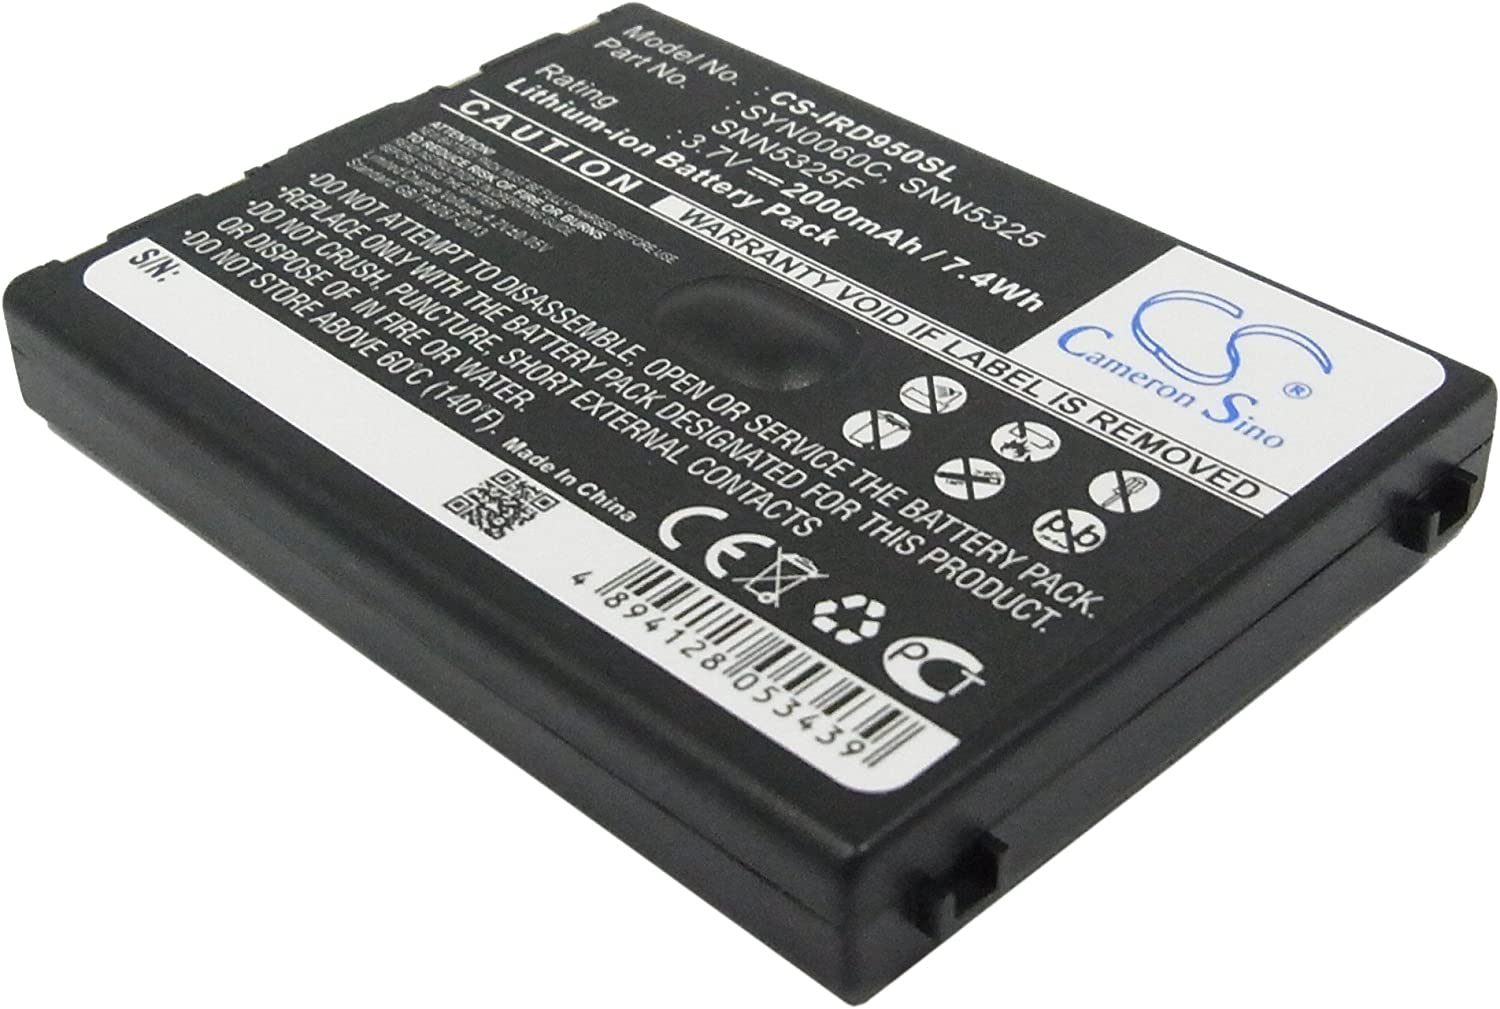 GAXI Battery for 9500, 9505 Replacement for Iridium Satellite Phone Battery